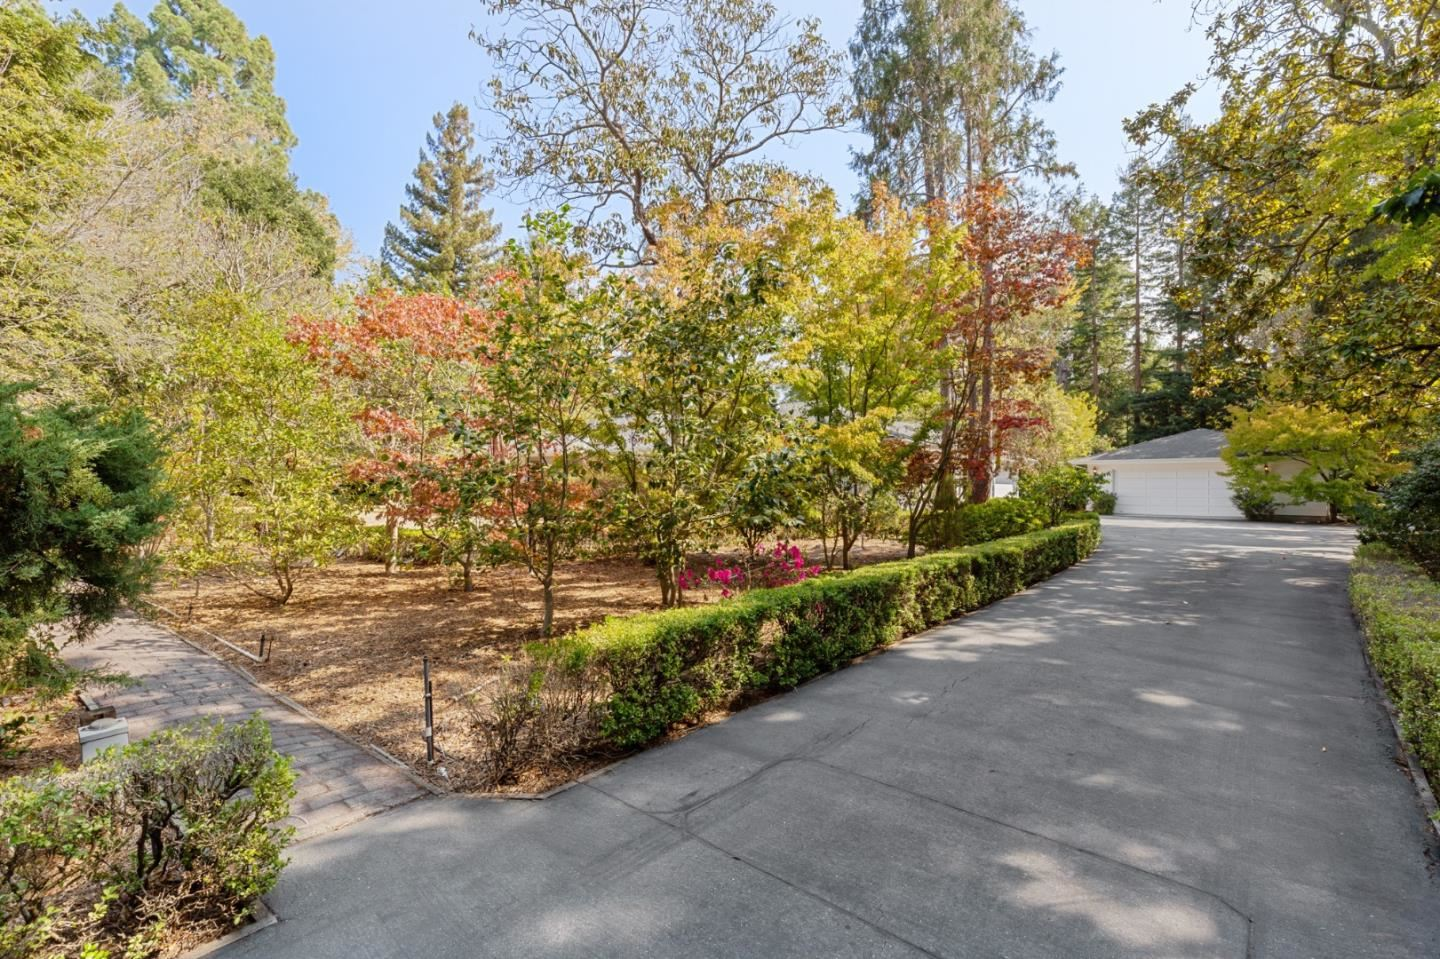 Photo for 143 Selby LN, ATHERTON, CA 94027 (MLS # ML81815316)